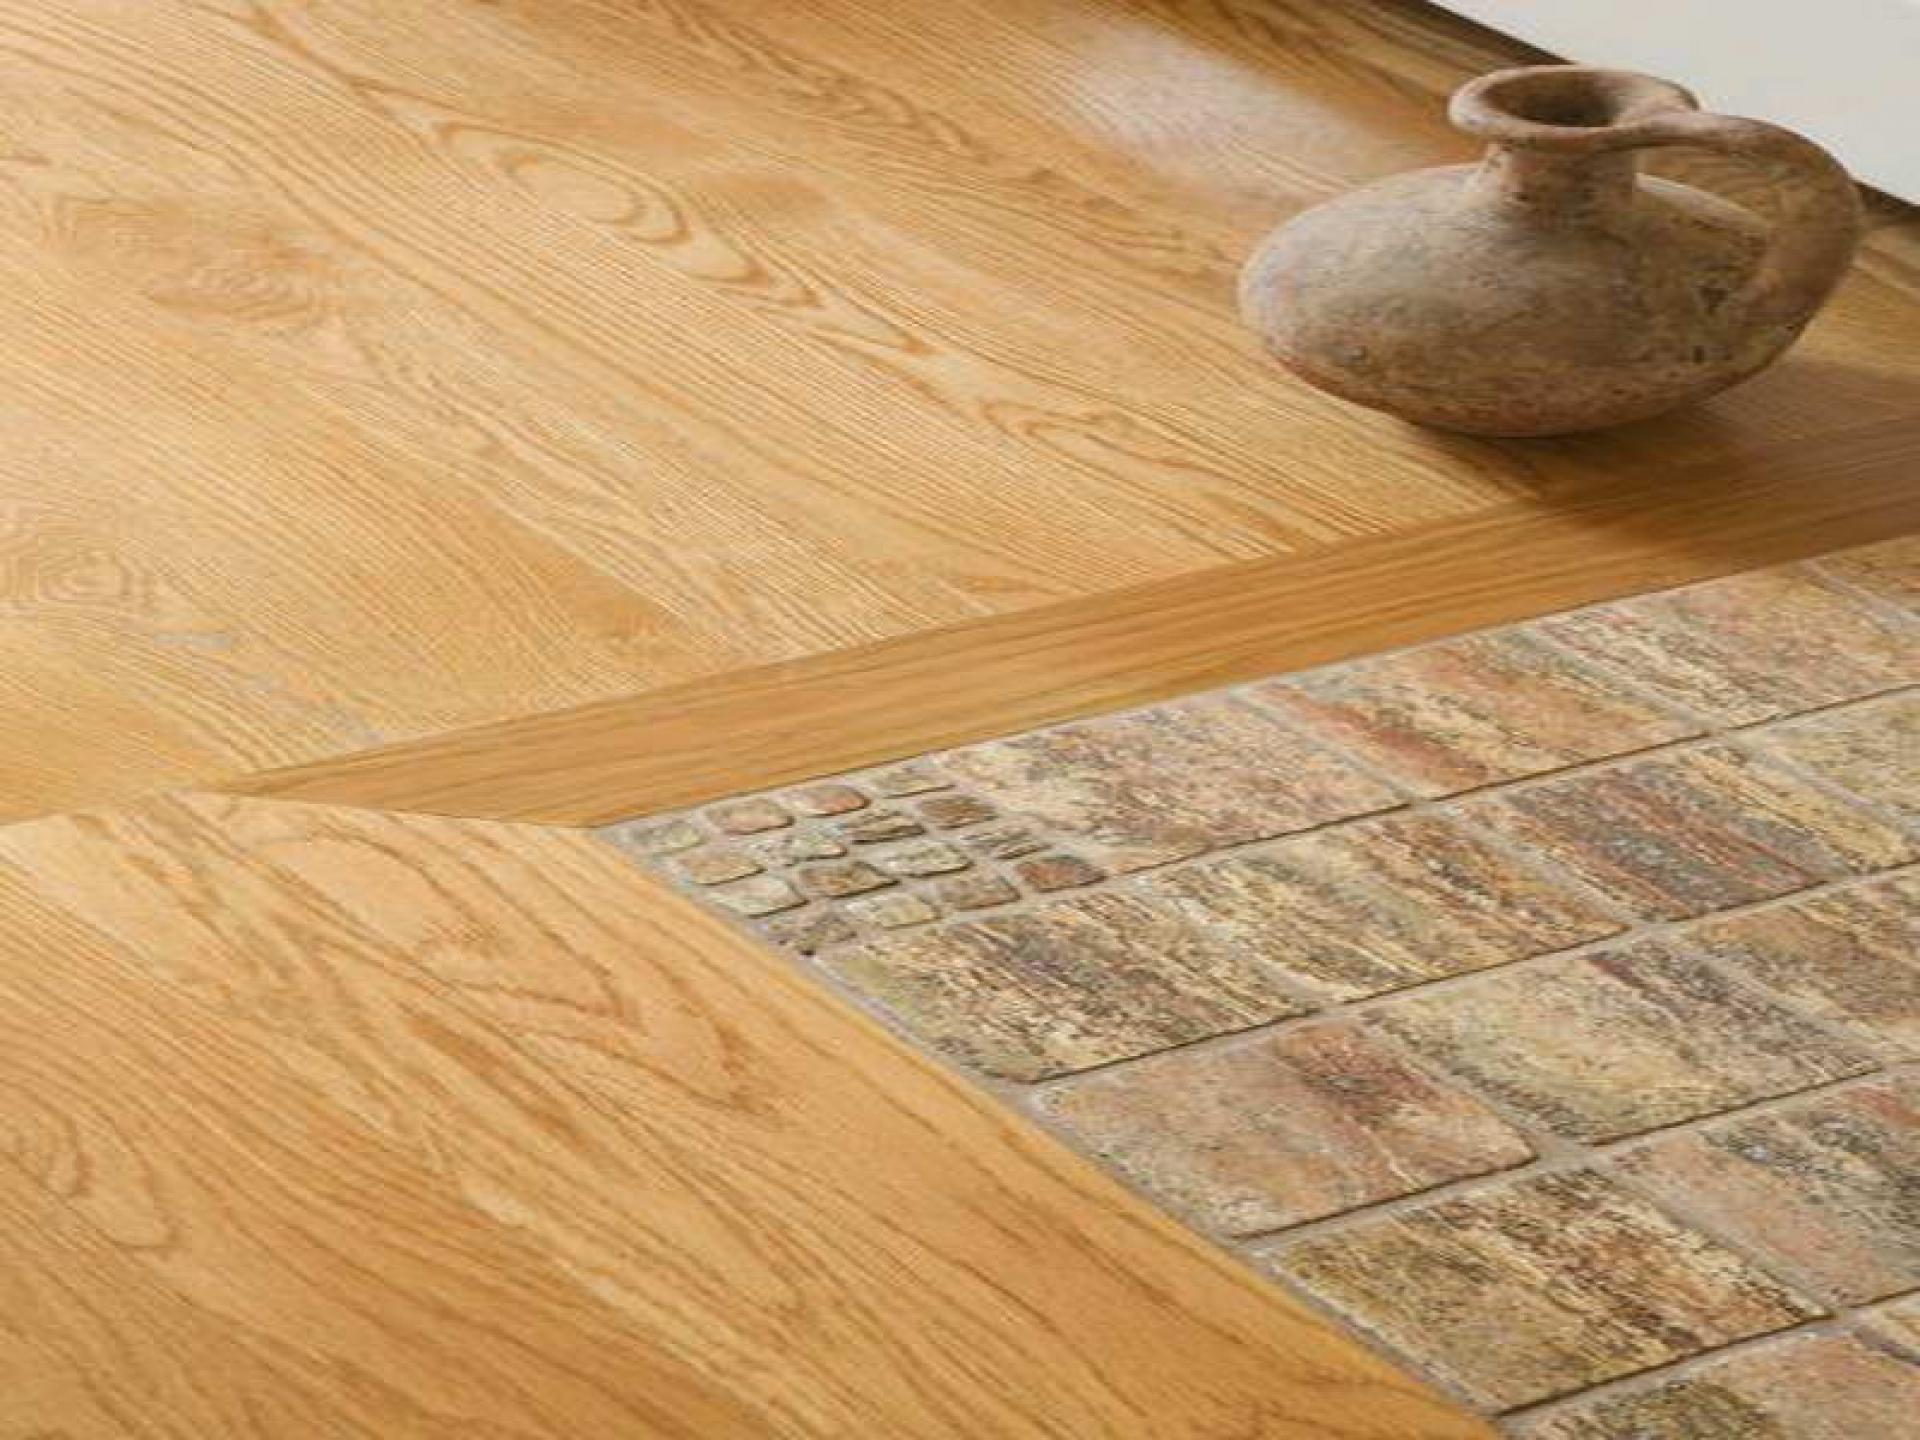 Wood Floor Threshold Ideas